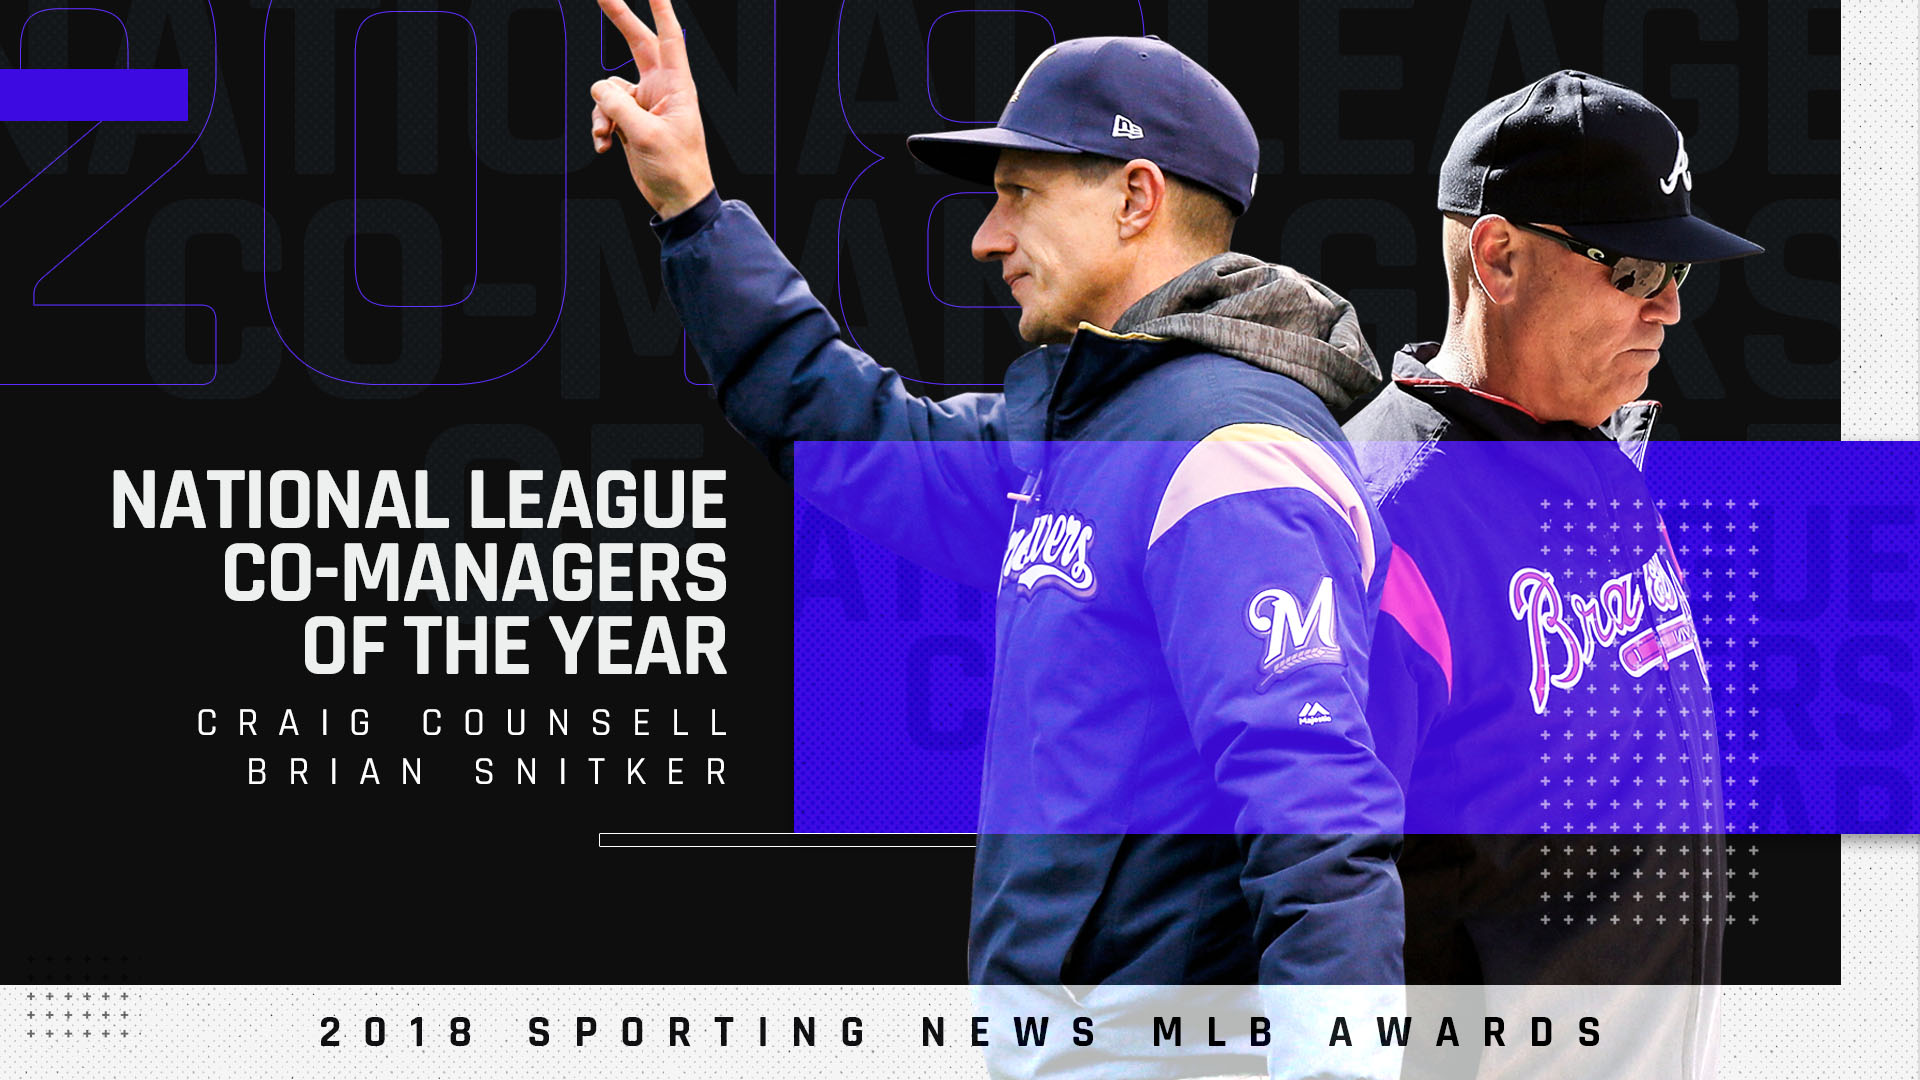 Mlbawards-2018-tuesday-nl-managerjpg_154qjv2db5ton159uoeqvcq8i4